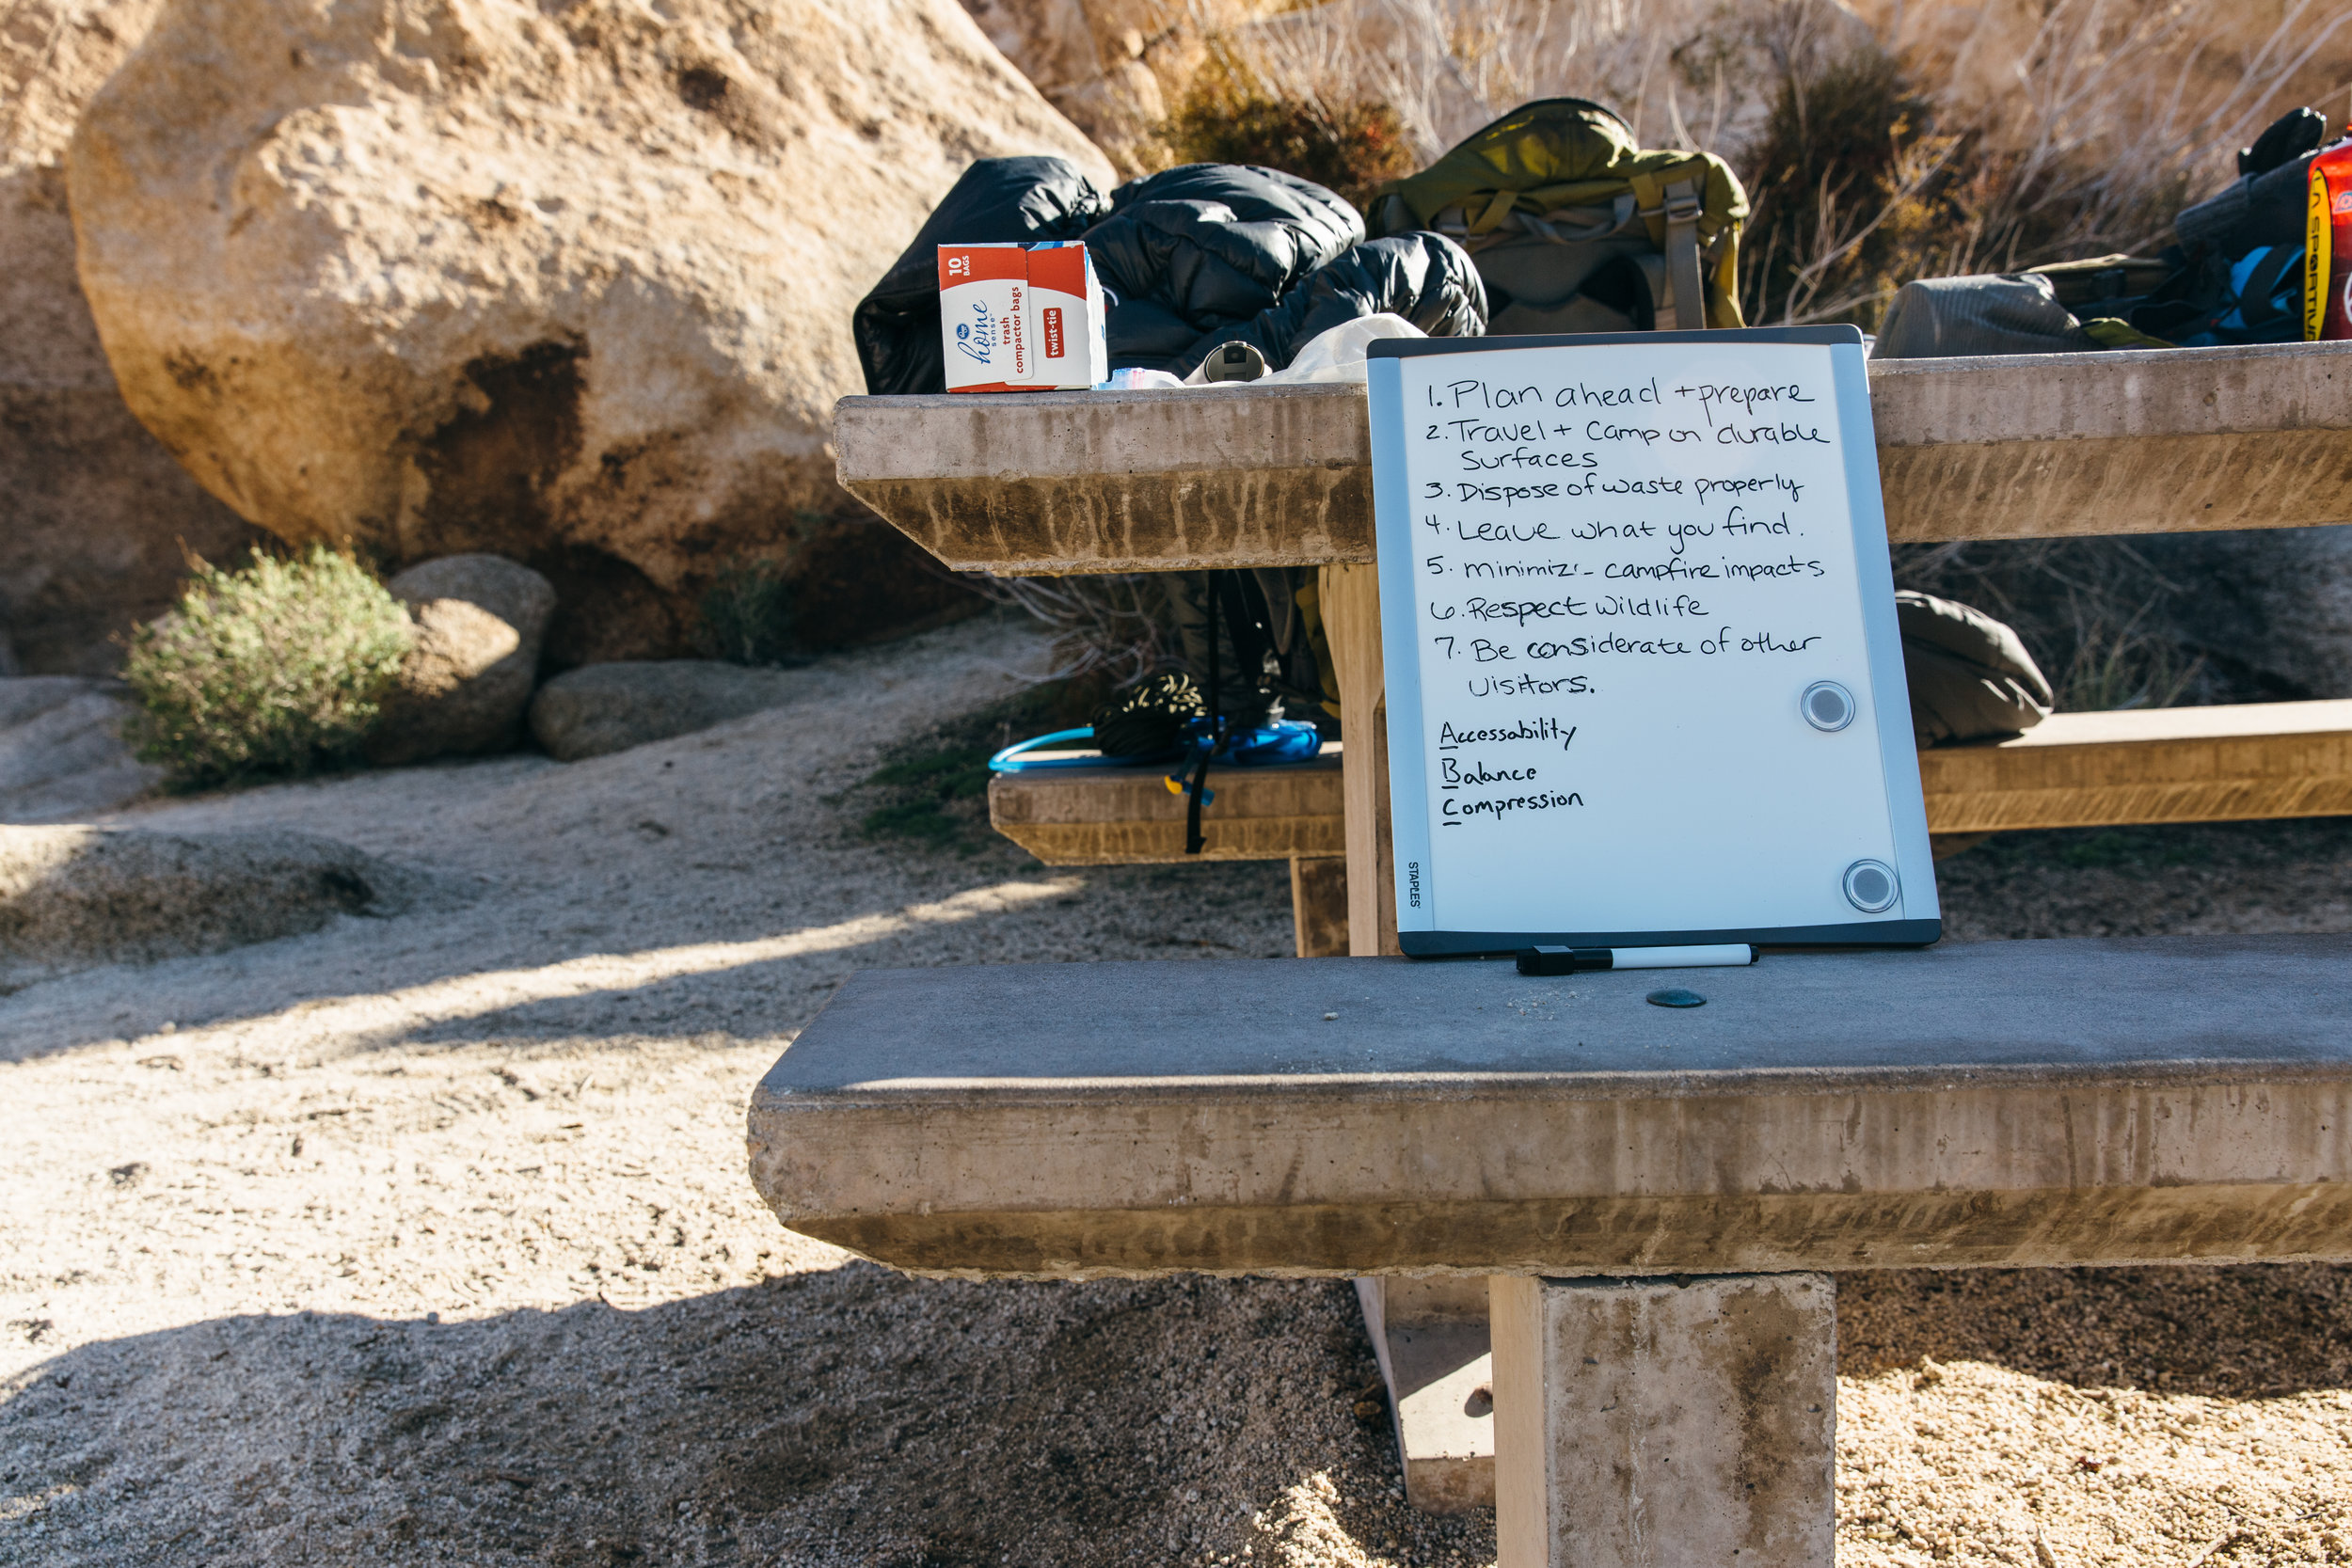 Getting some backpacking and leave no trace education